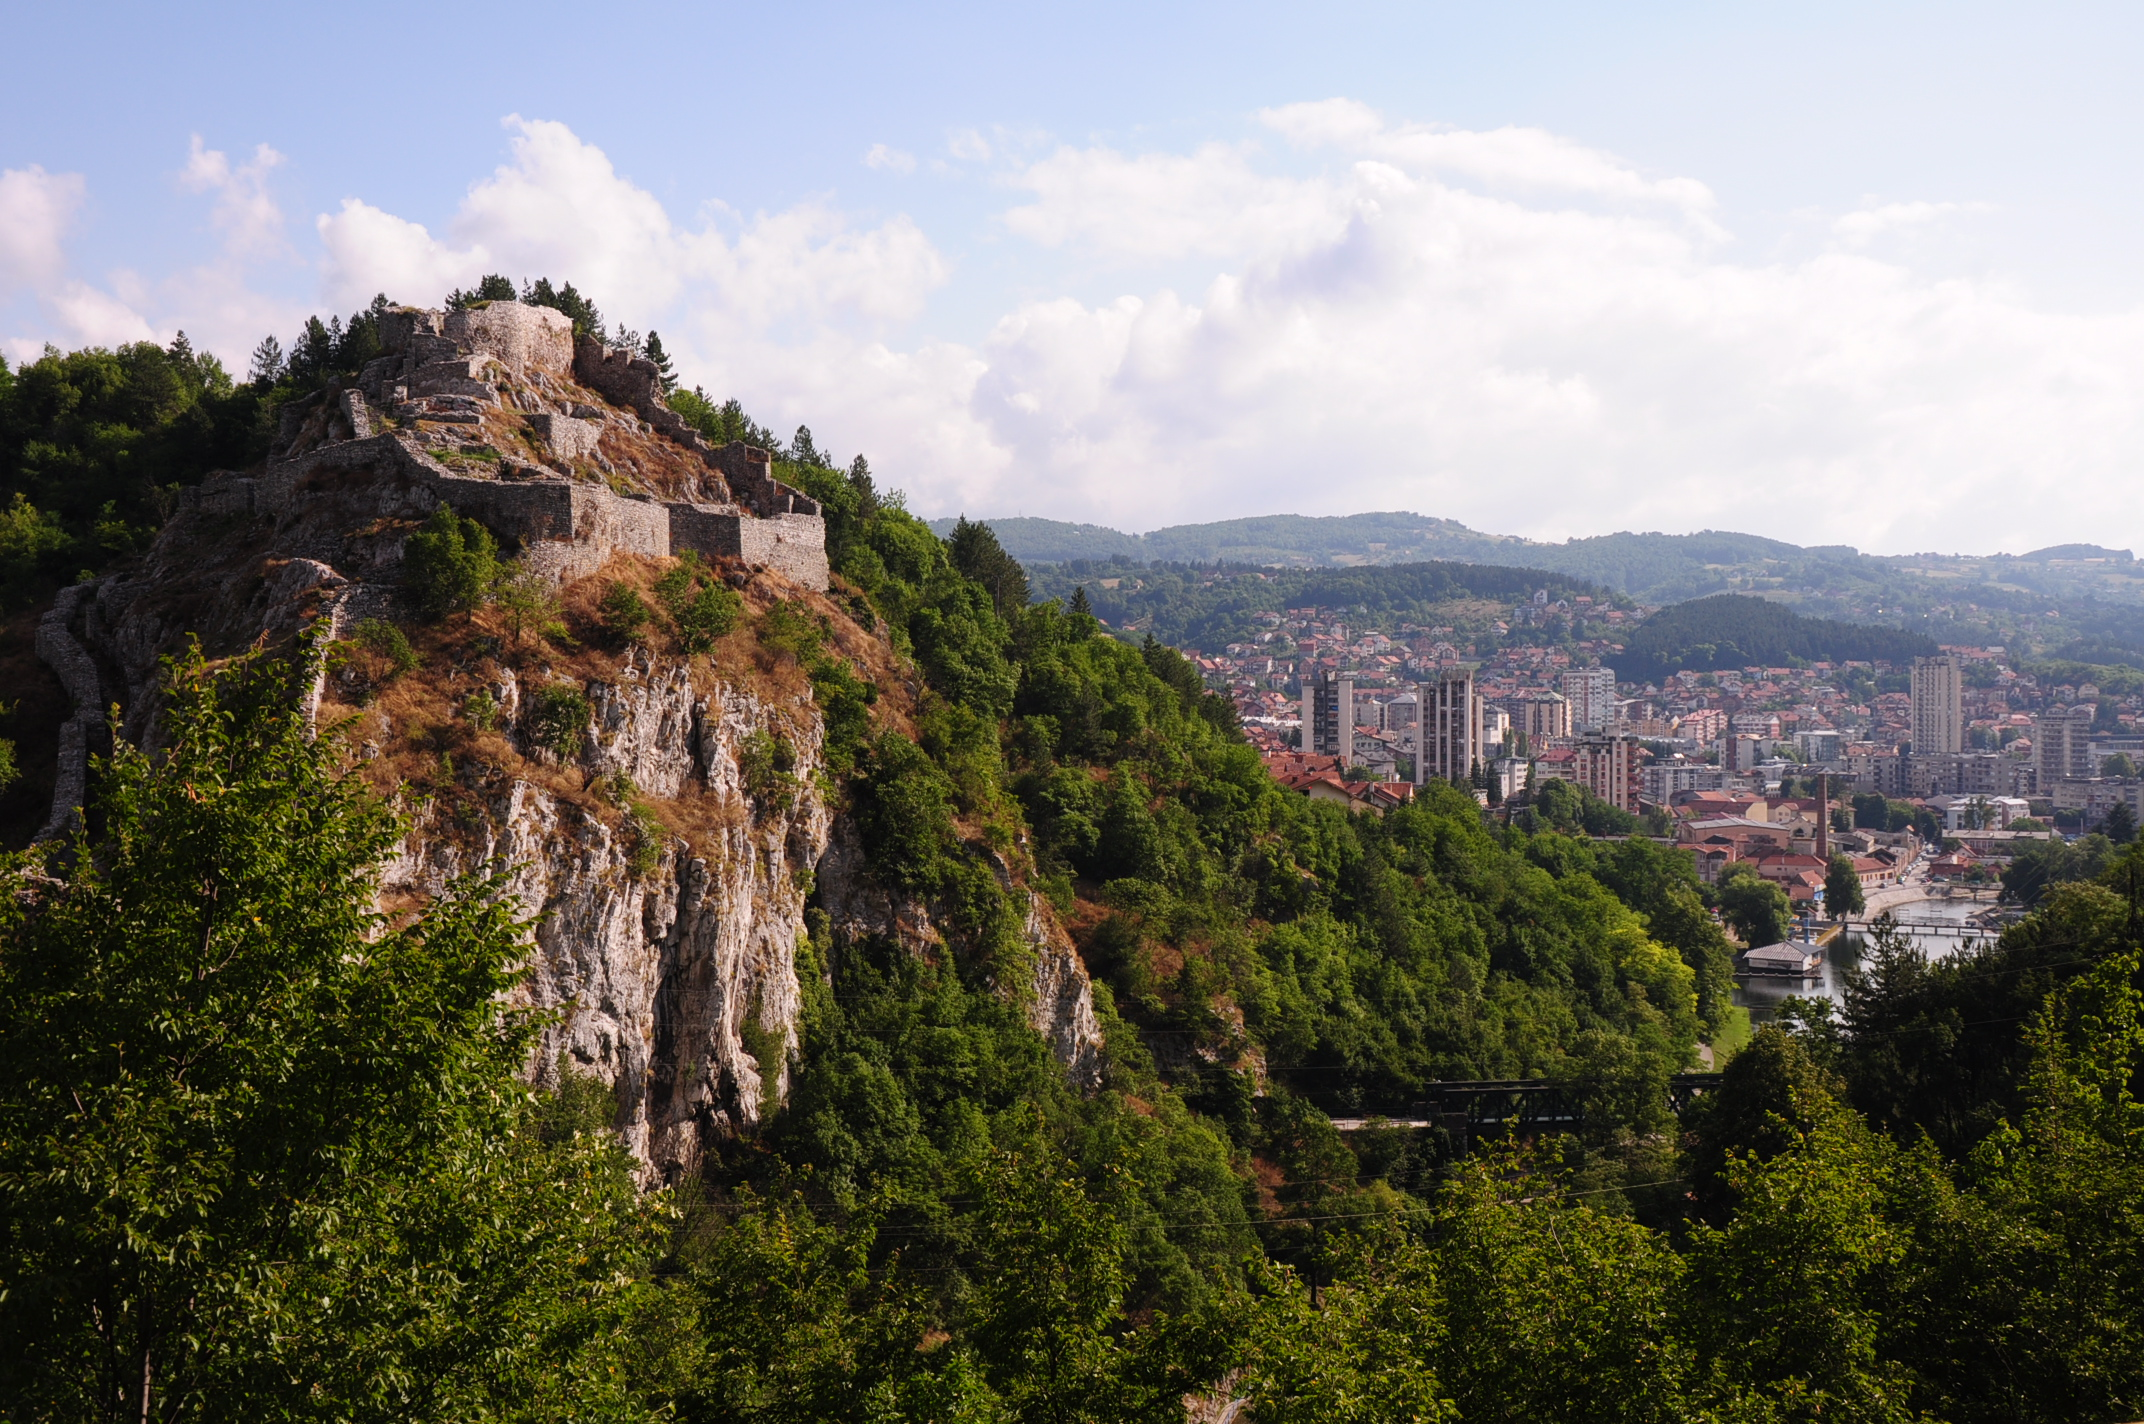 The castle of Uzice with the city in the distance